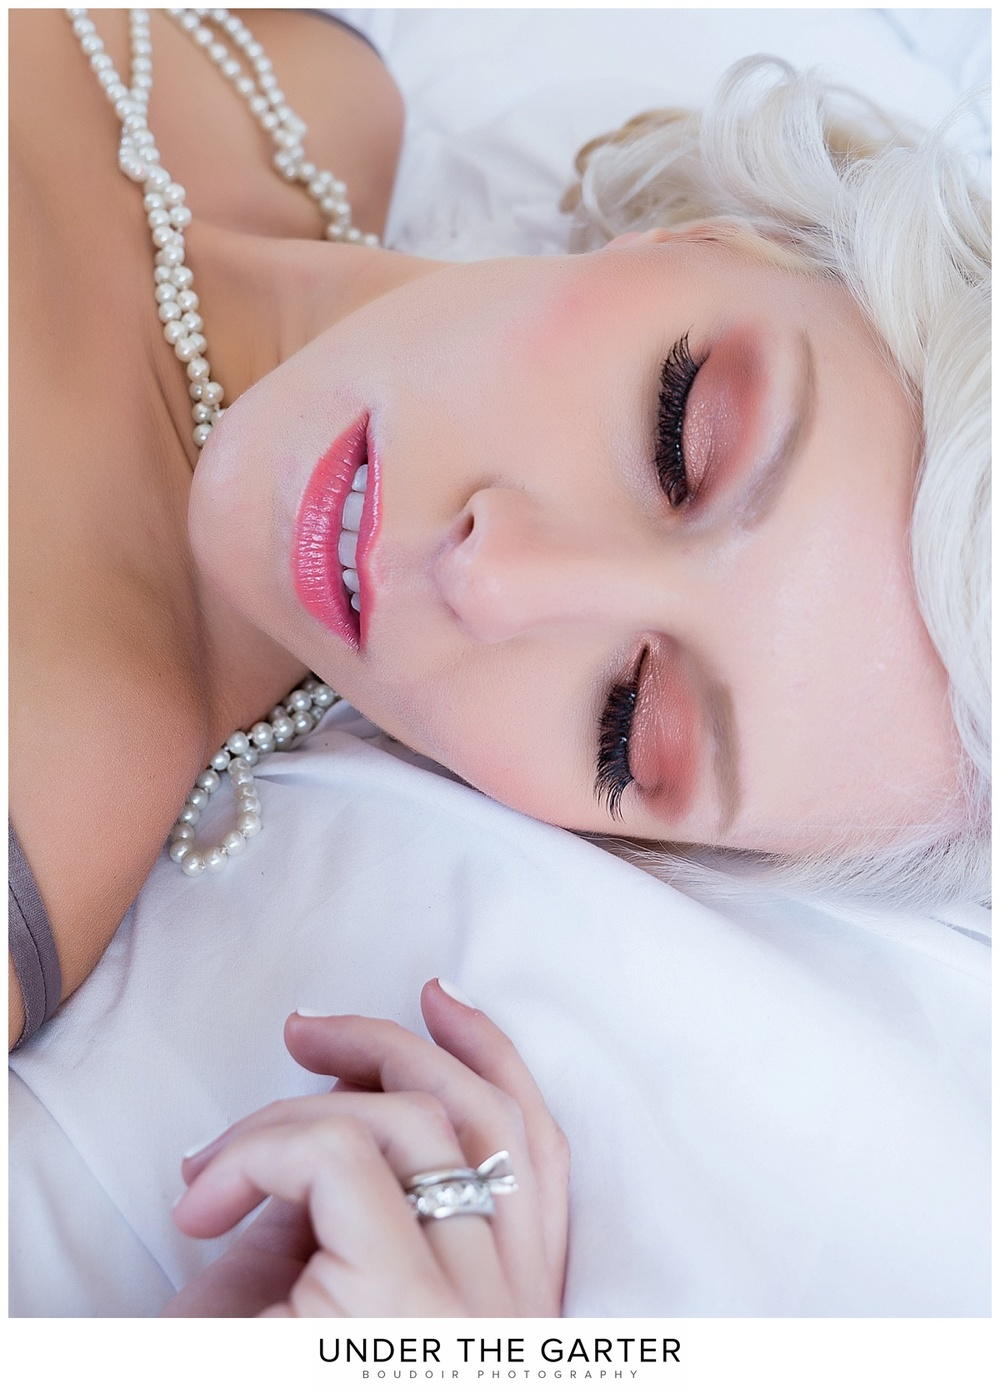 boudoir photography denver eye makeup detail.jpg